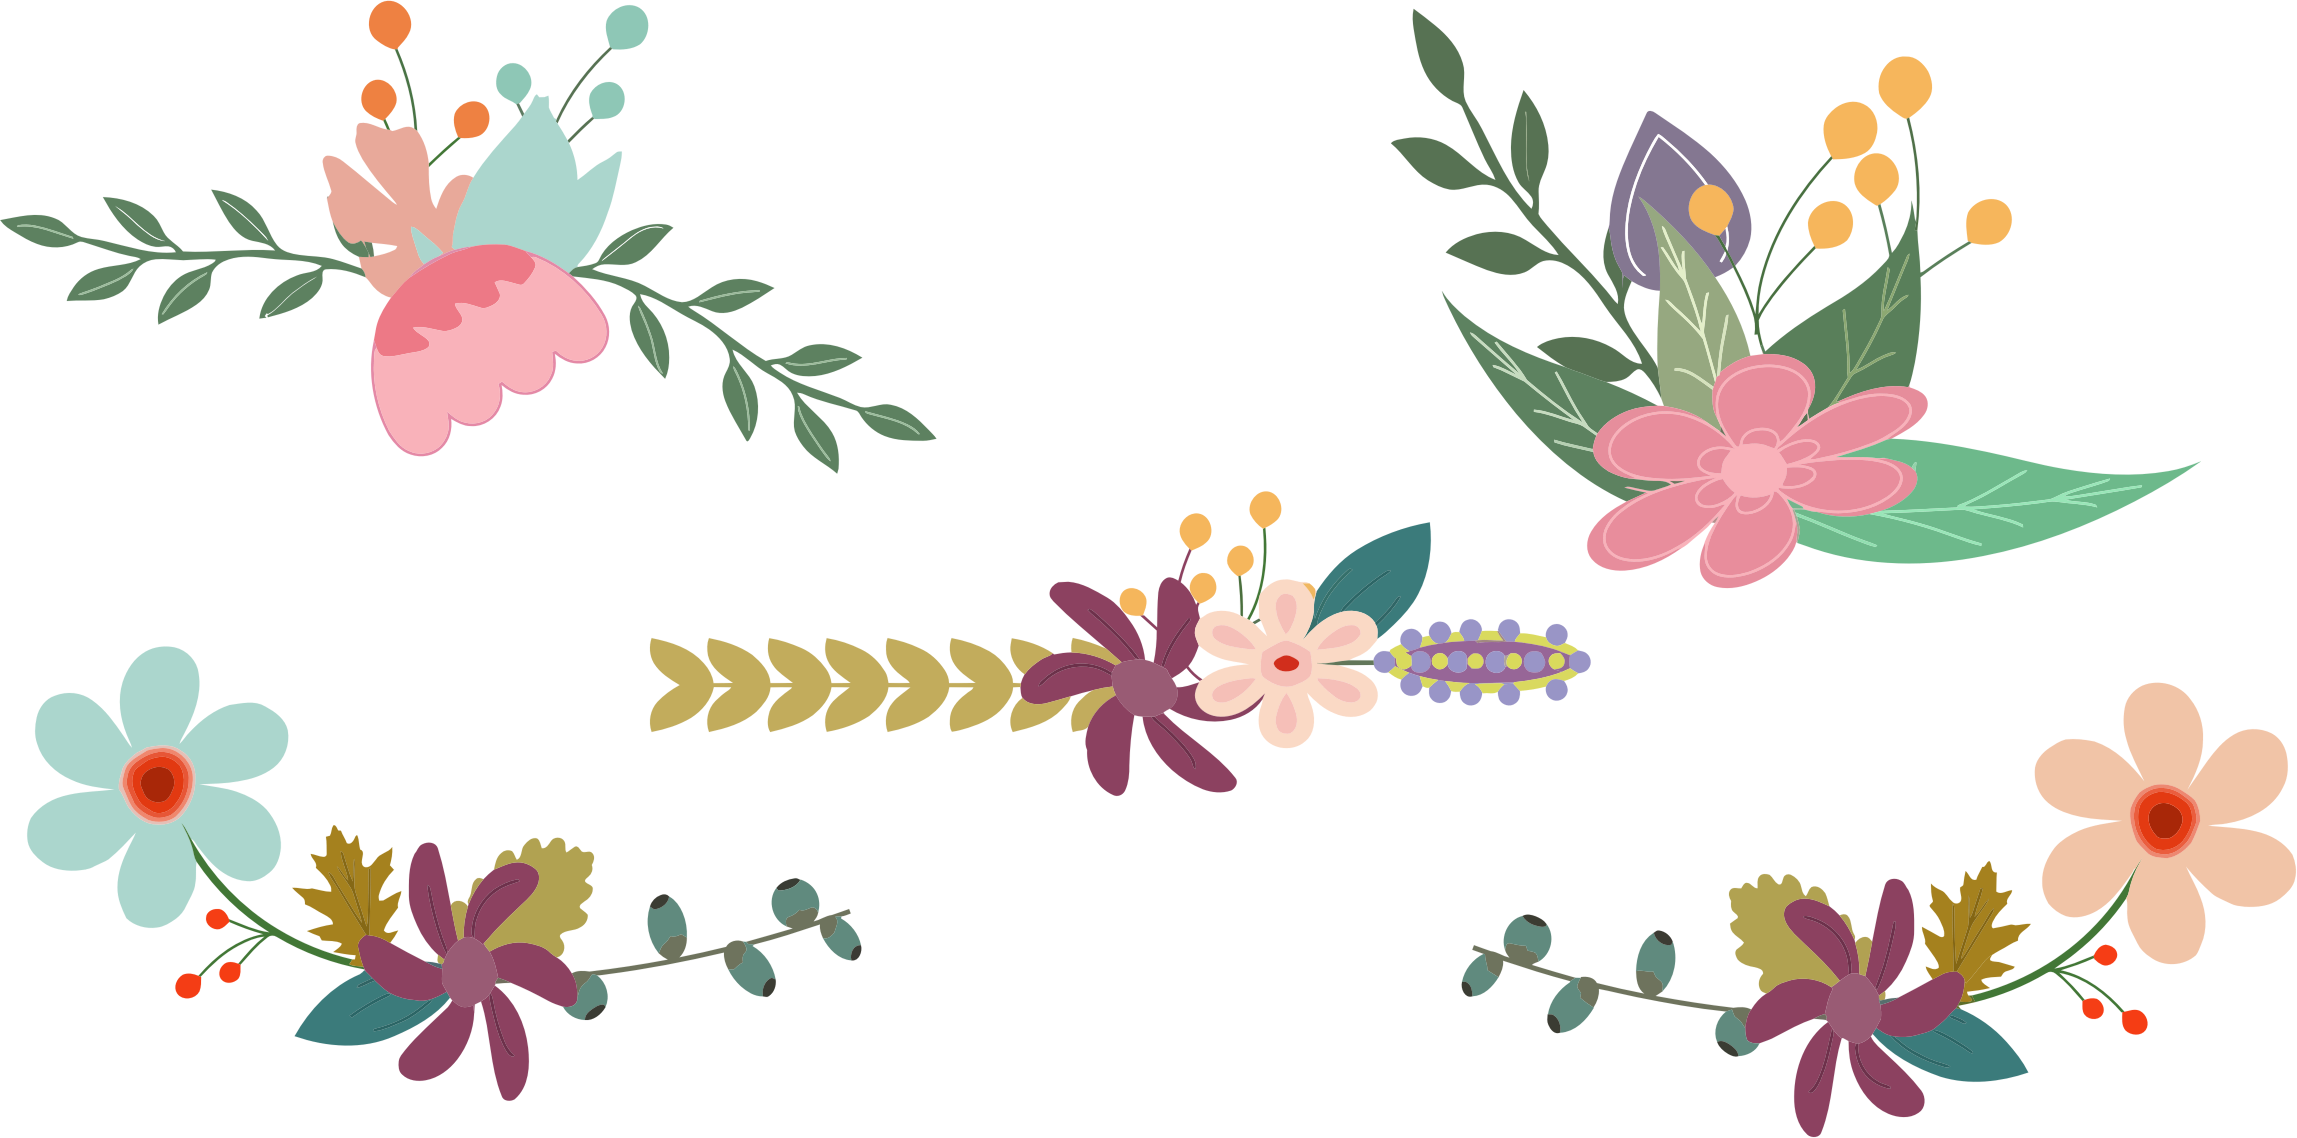 Elements clipart floral Clipart Floral Vintage Elements Elements